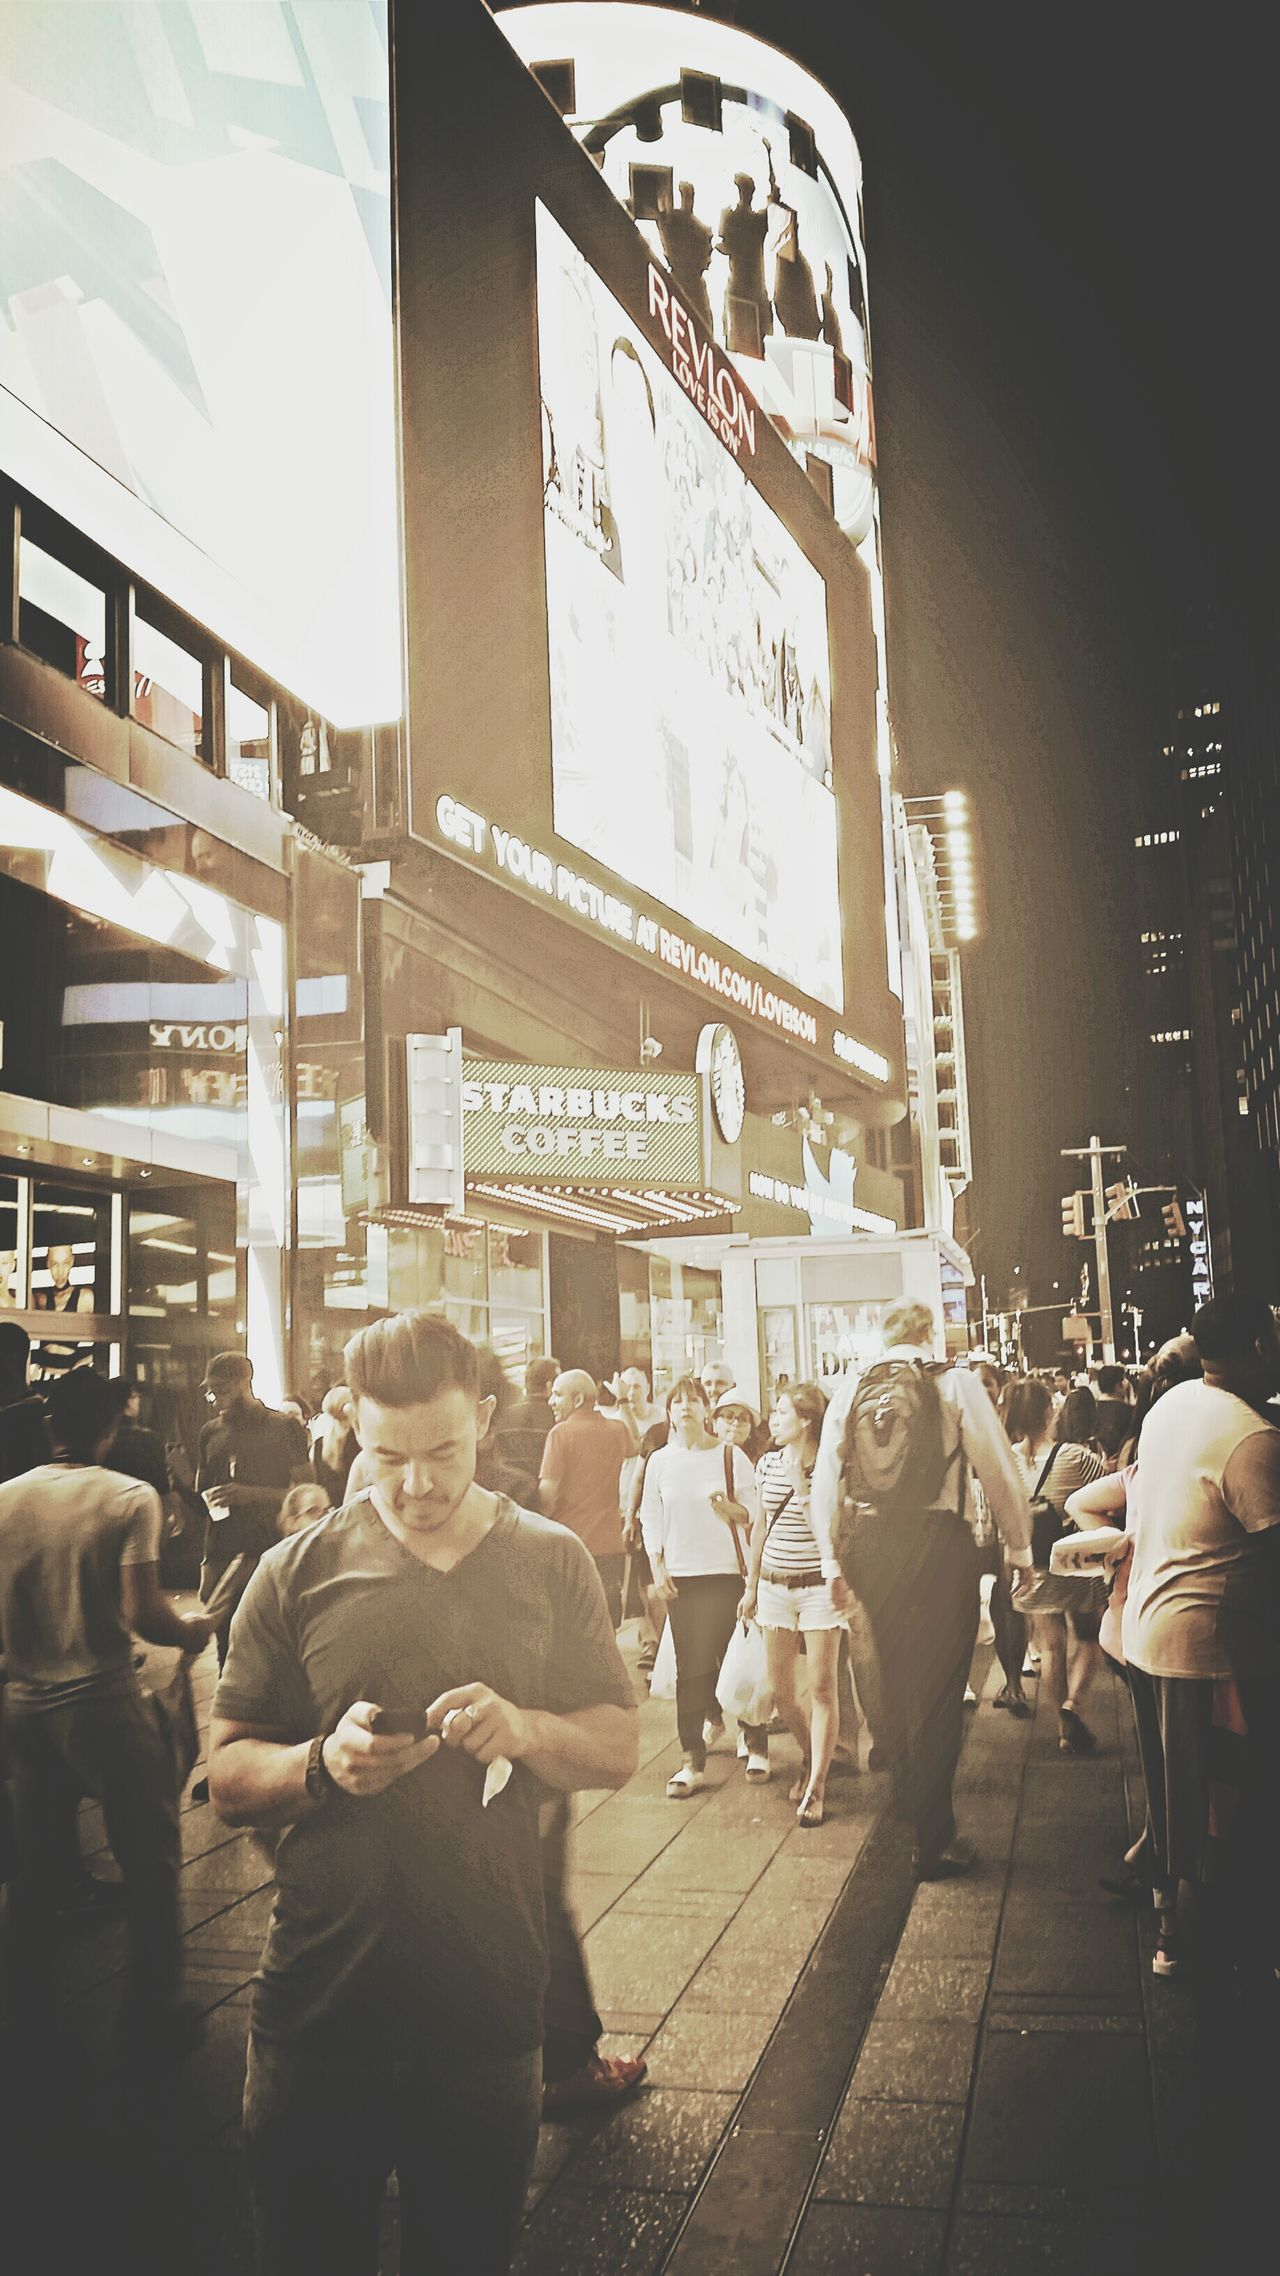 Newyorkcity Newyorkstreet Nightphotography Night Lights Streetshot Capturedmoment Travelphotography Timesquarenyc Travels